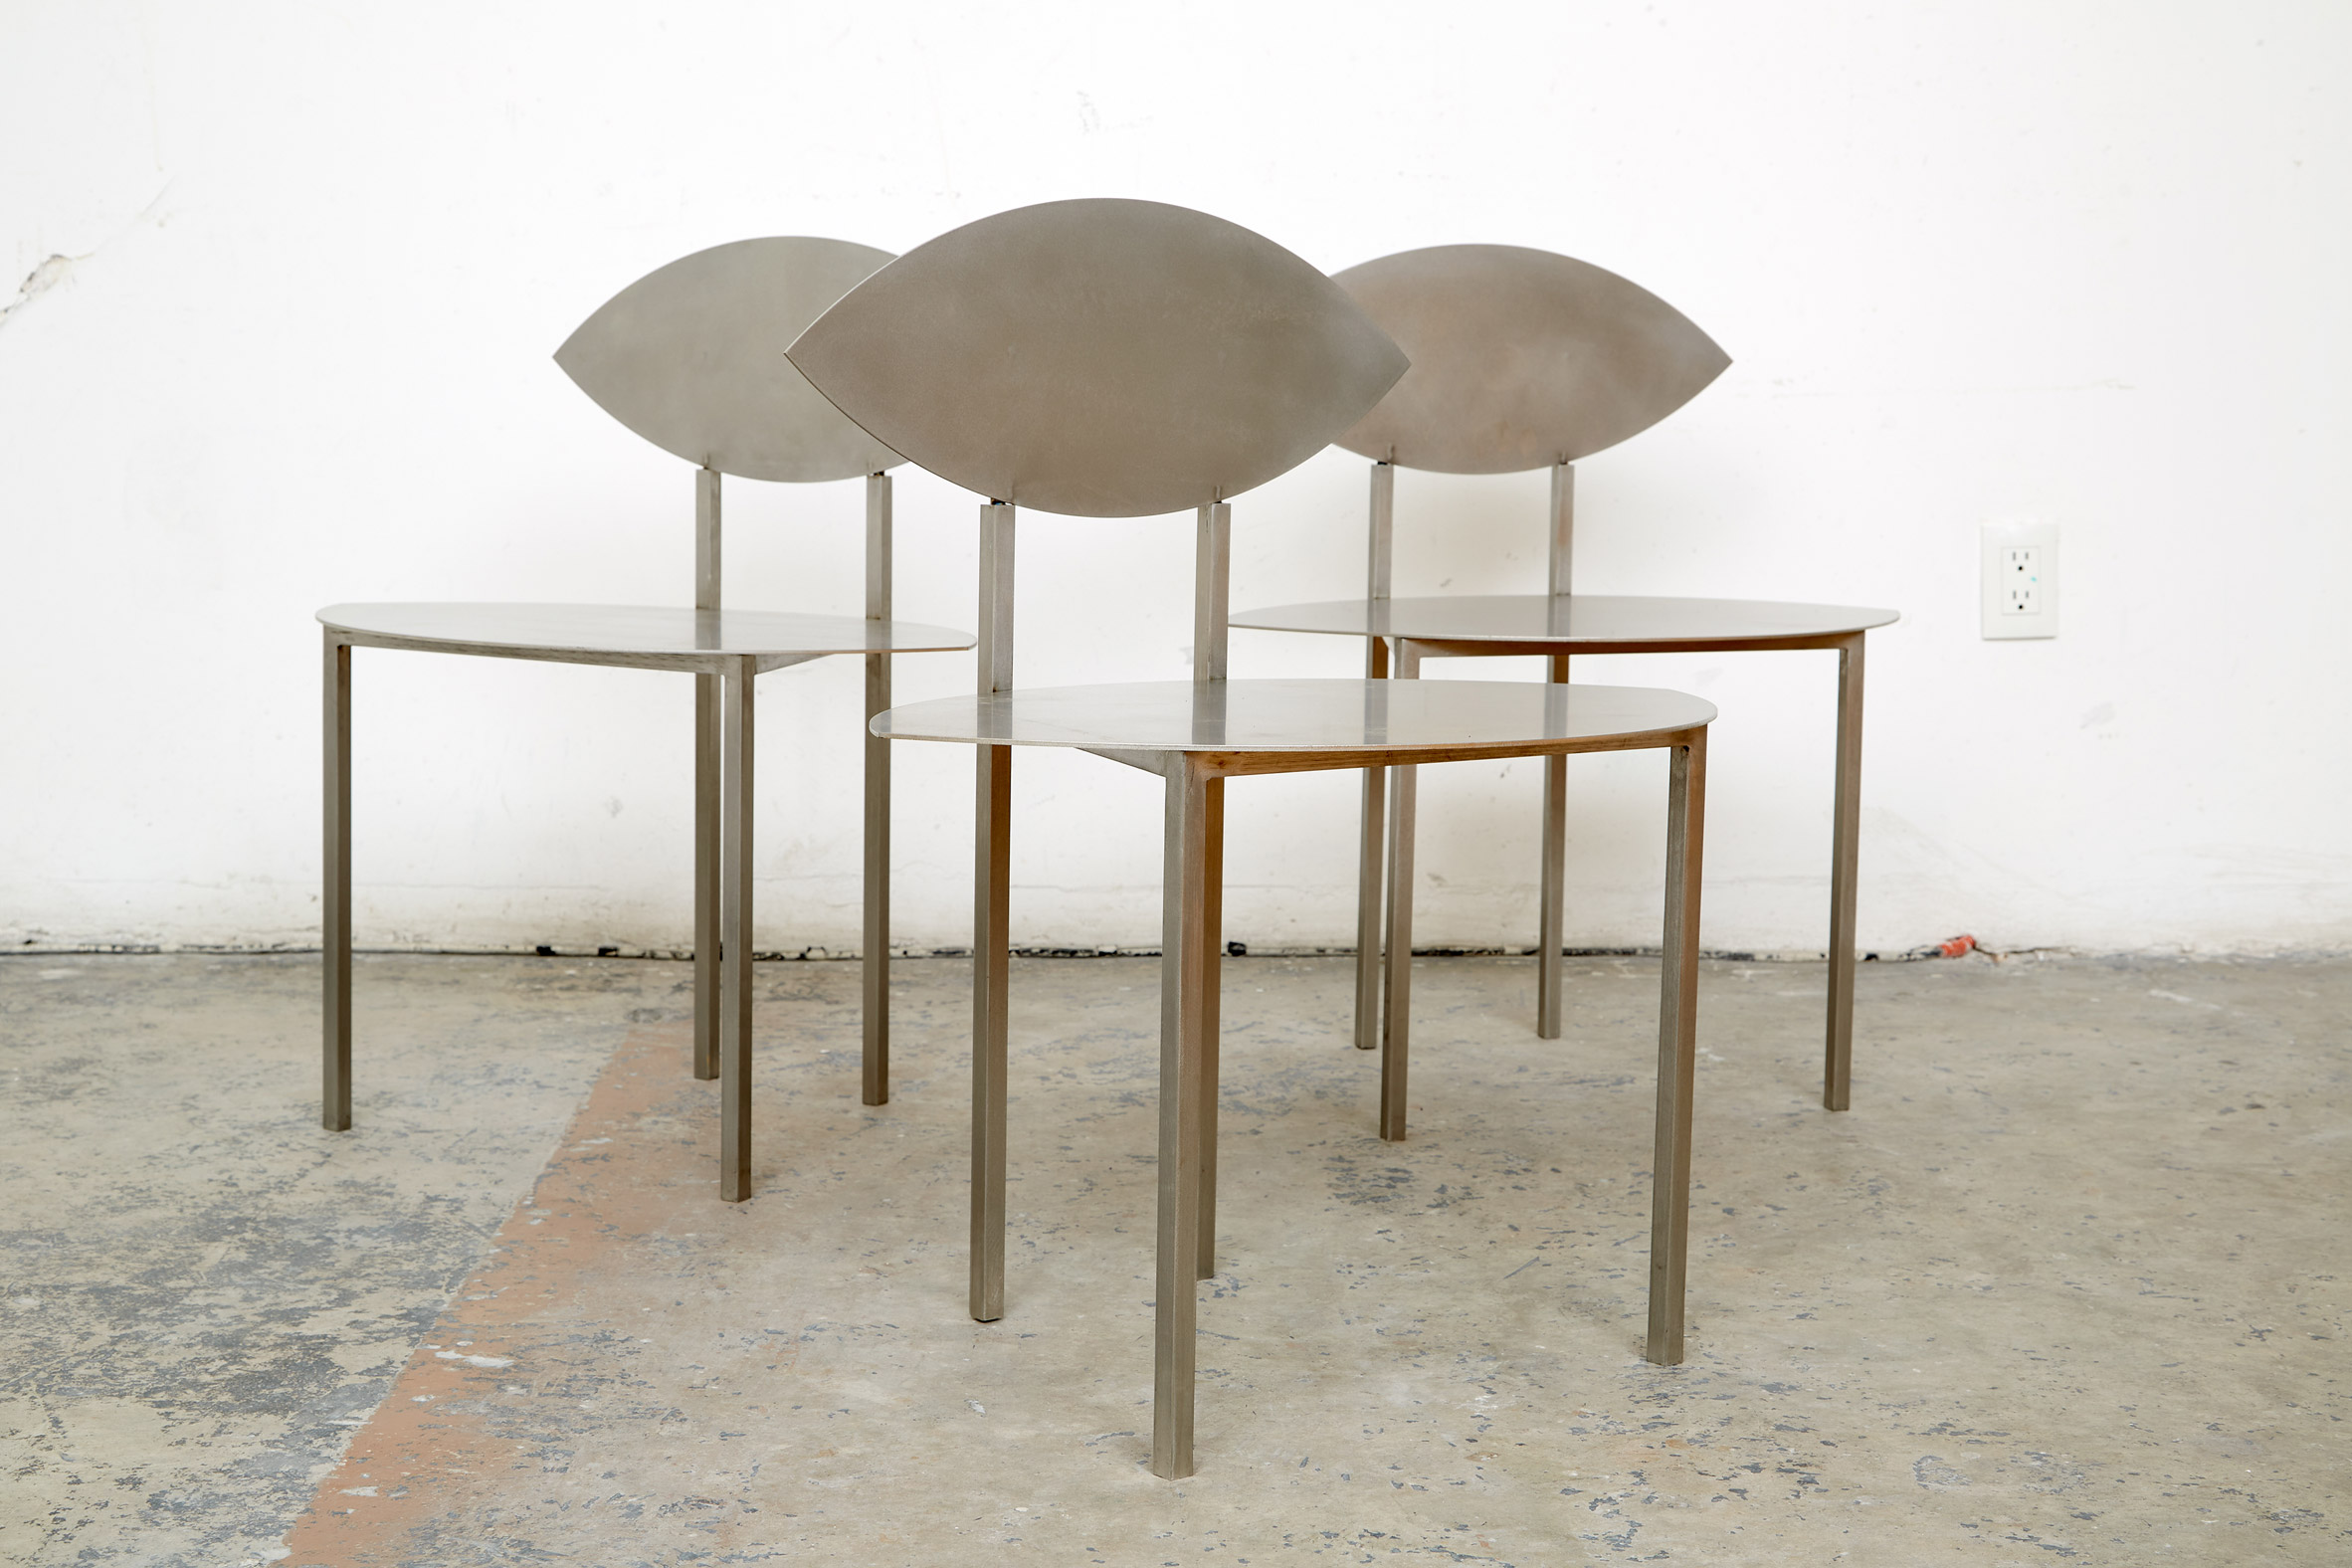 Stainless steel chairs by Georgian design duo Rooms